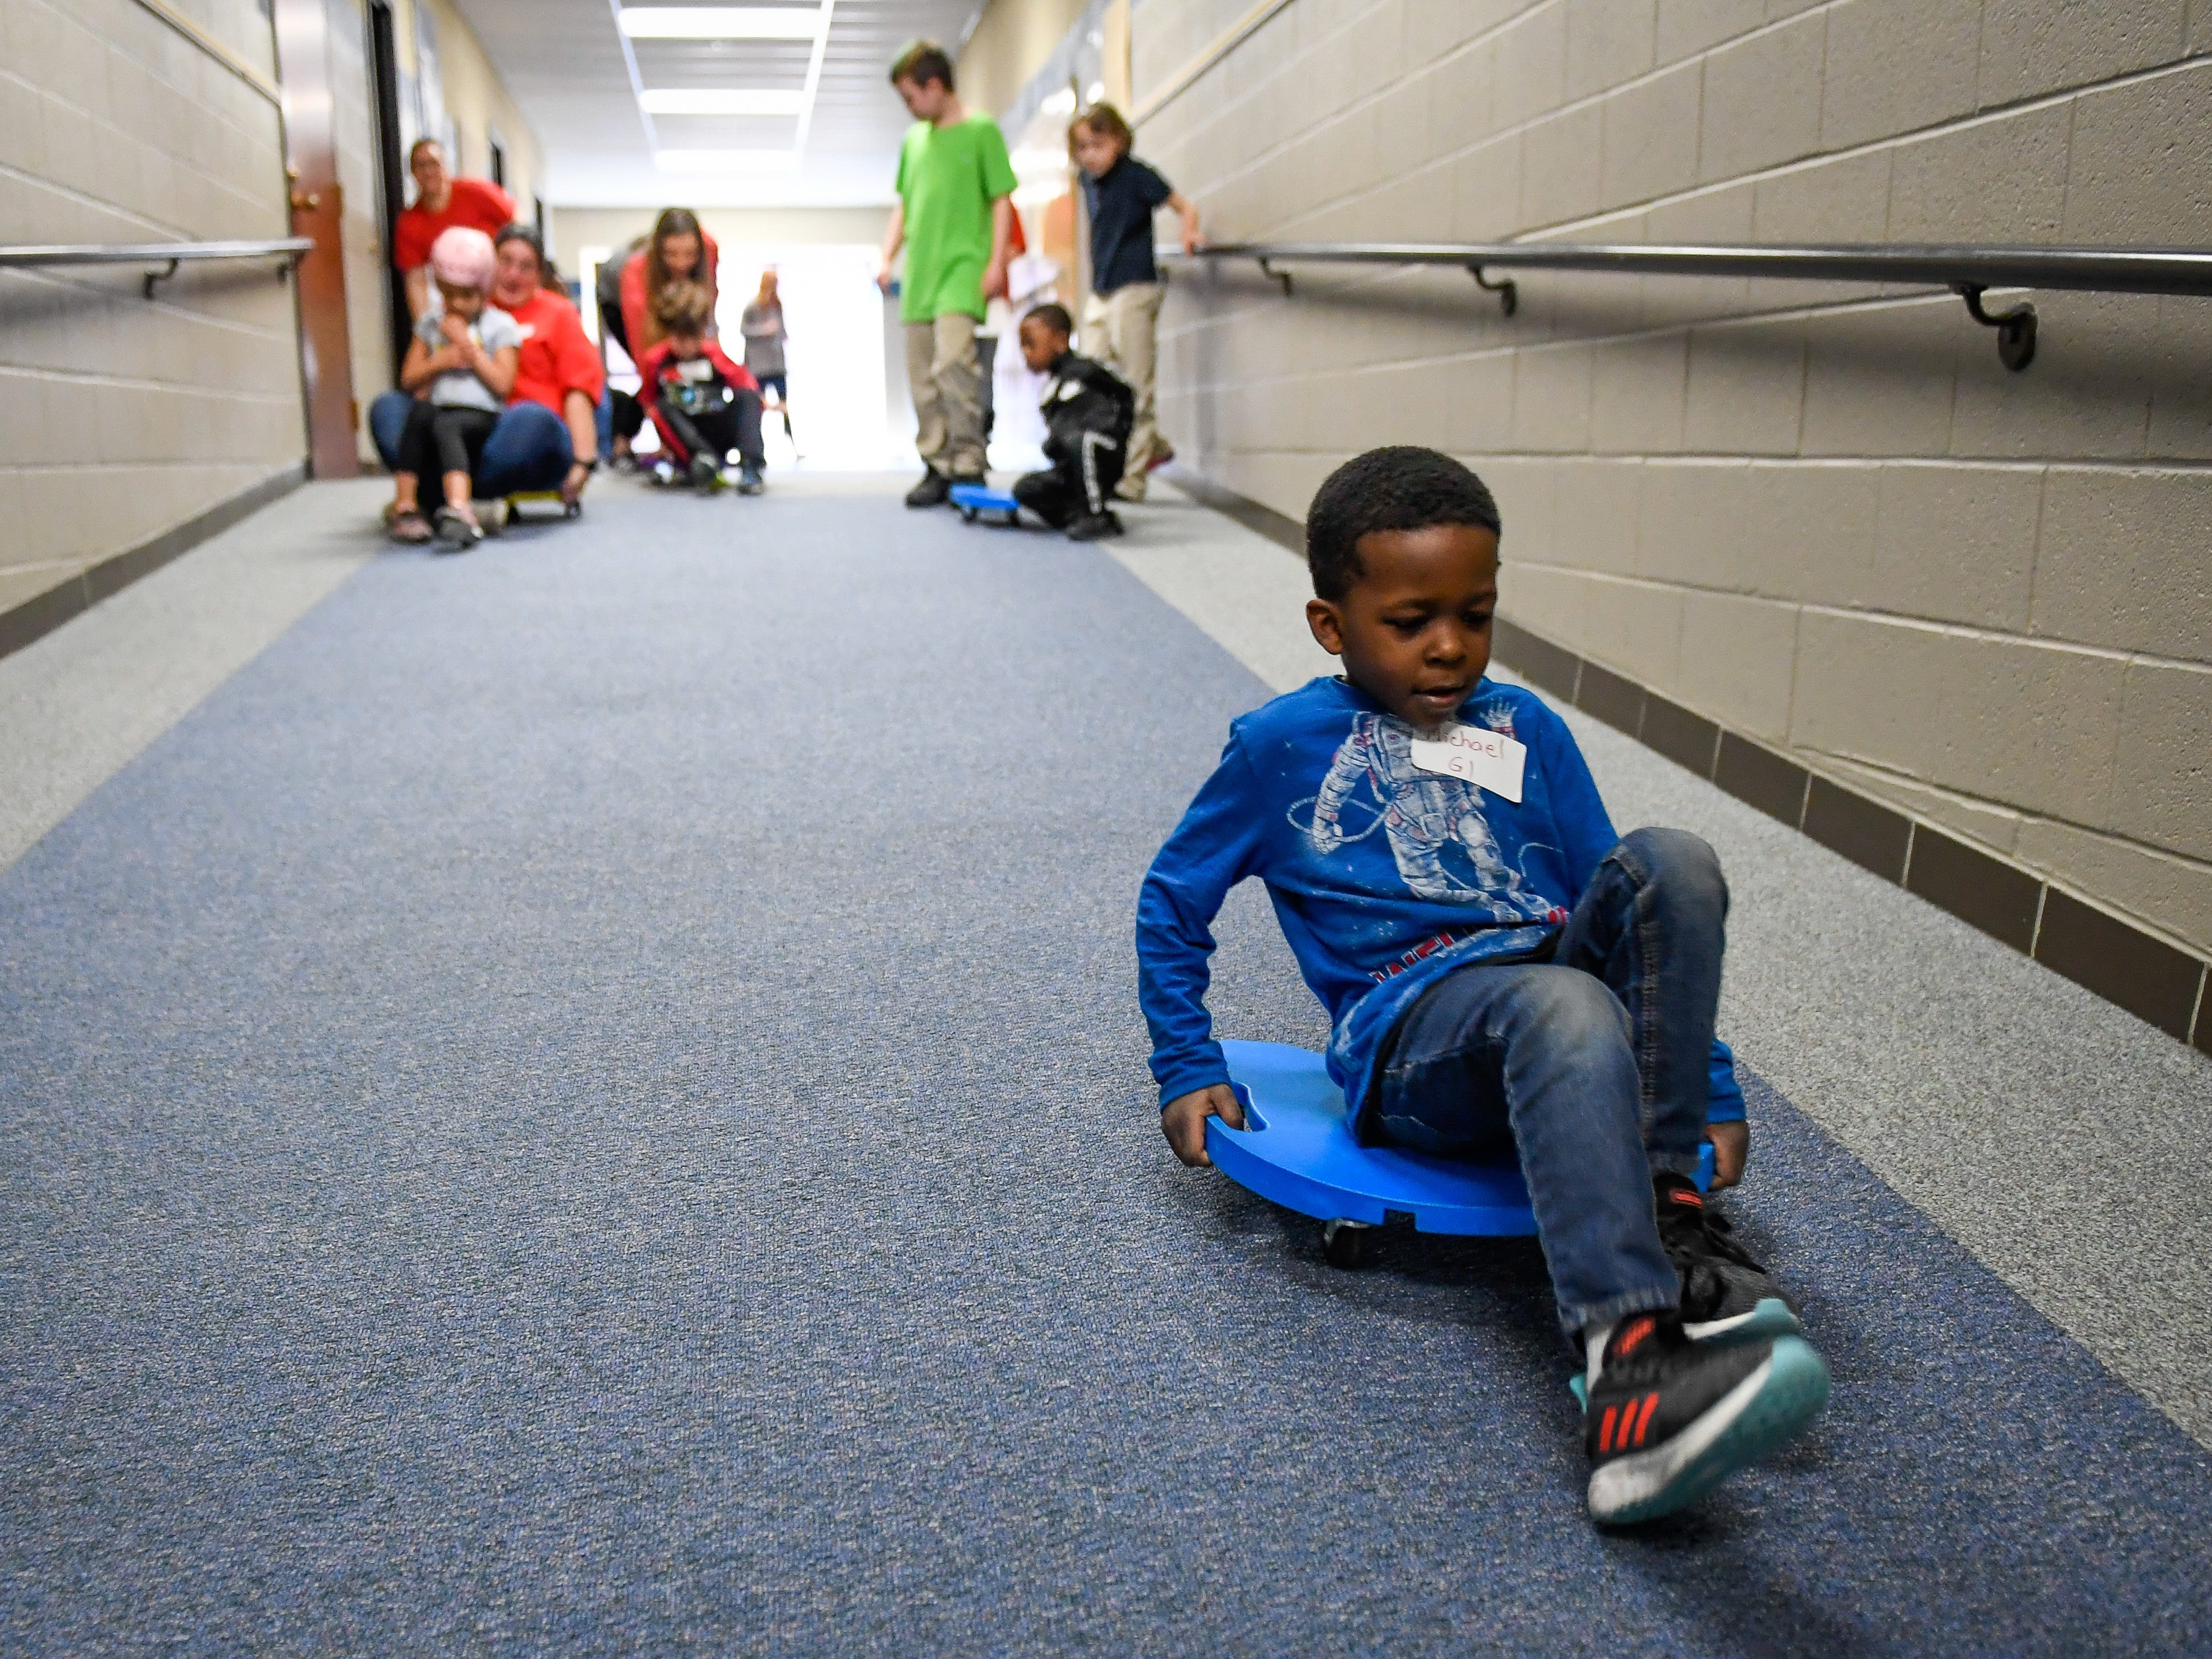 Michael Higginson takes first place in the scooter race during the Special Olympics Unified Champion School Young Athlete program at Culver Early Learning Center Friday, March 22, 2019.